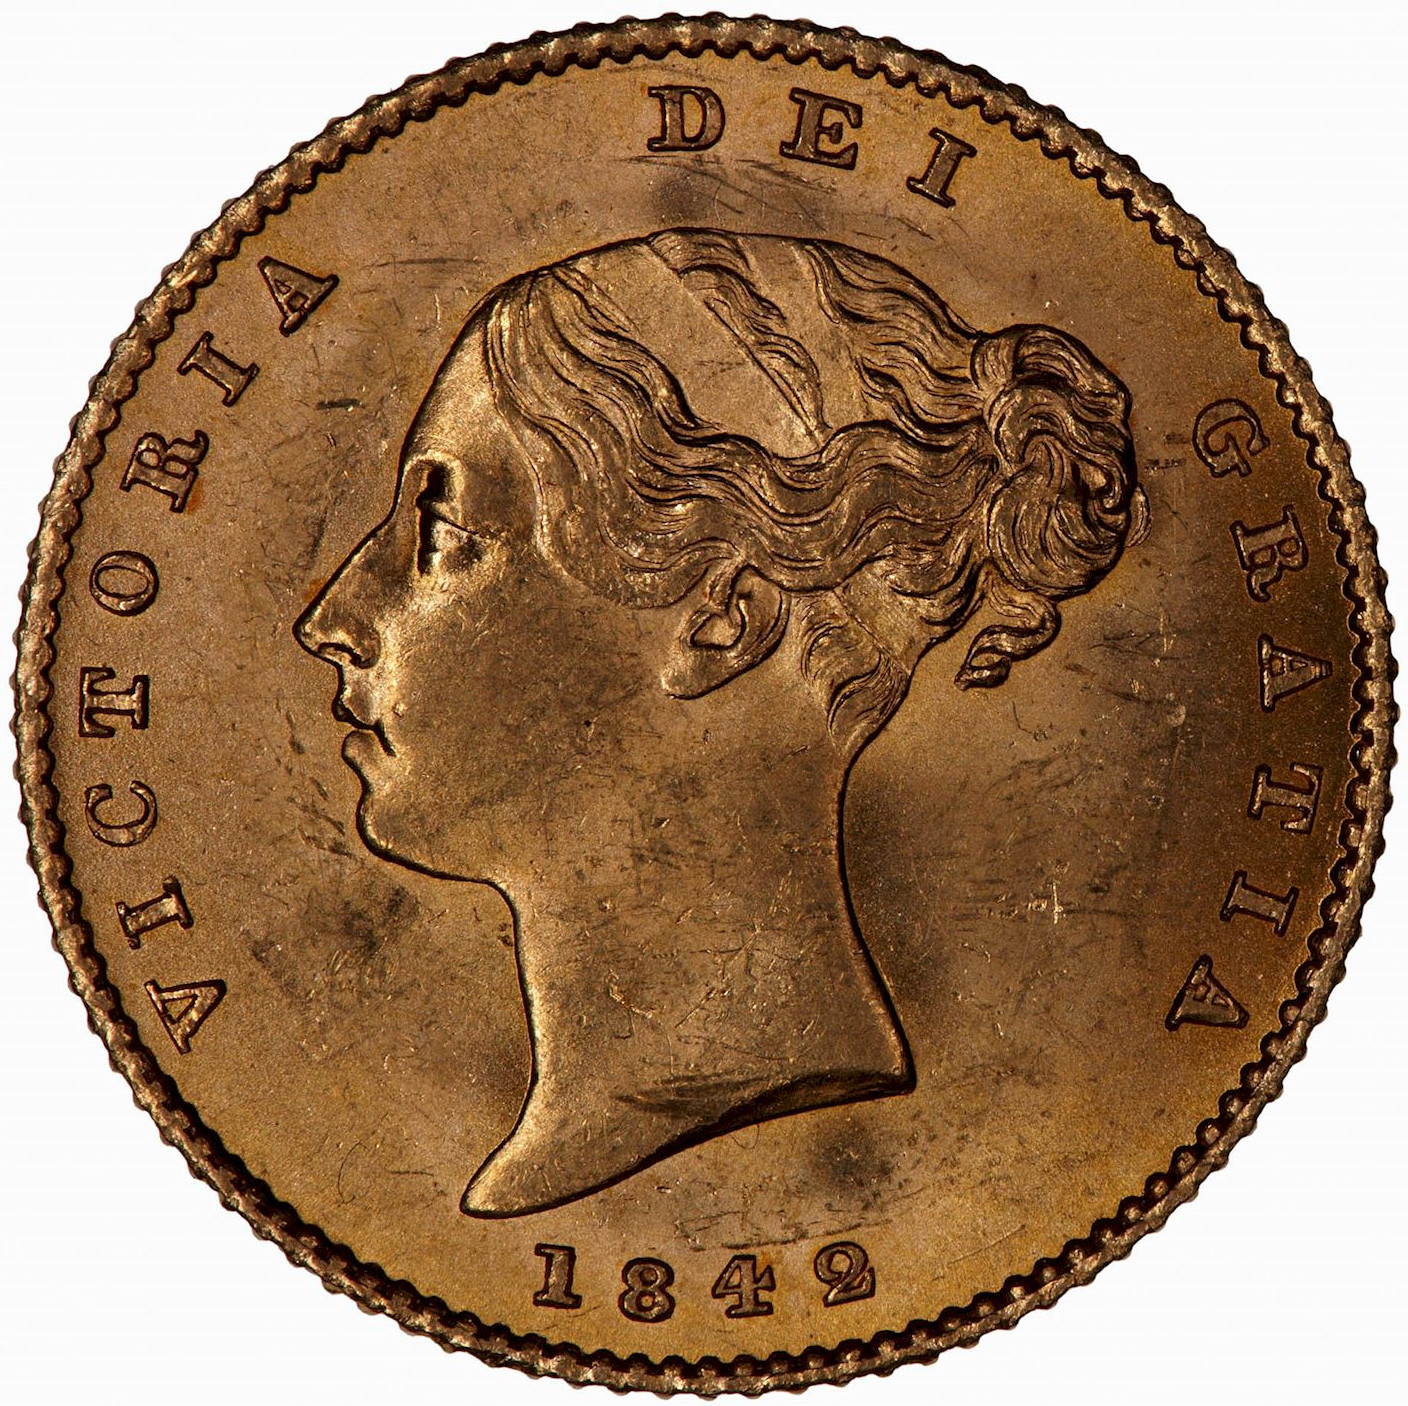 Half Sovereign 1842: Photo Coin - Half-Sovereign, Queen Victoria, Great Britain, 1842